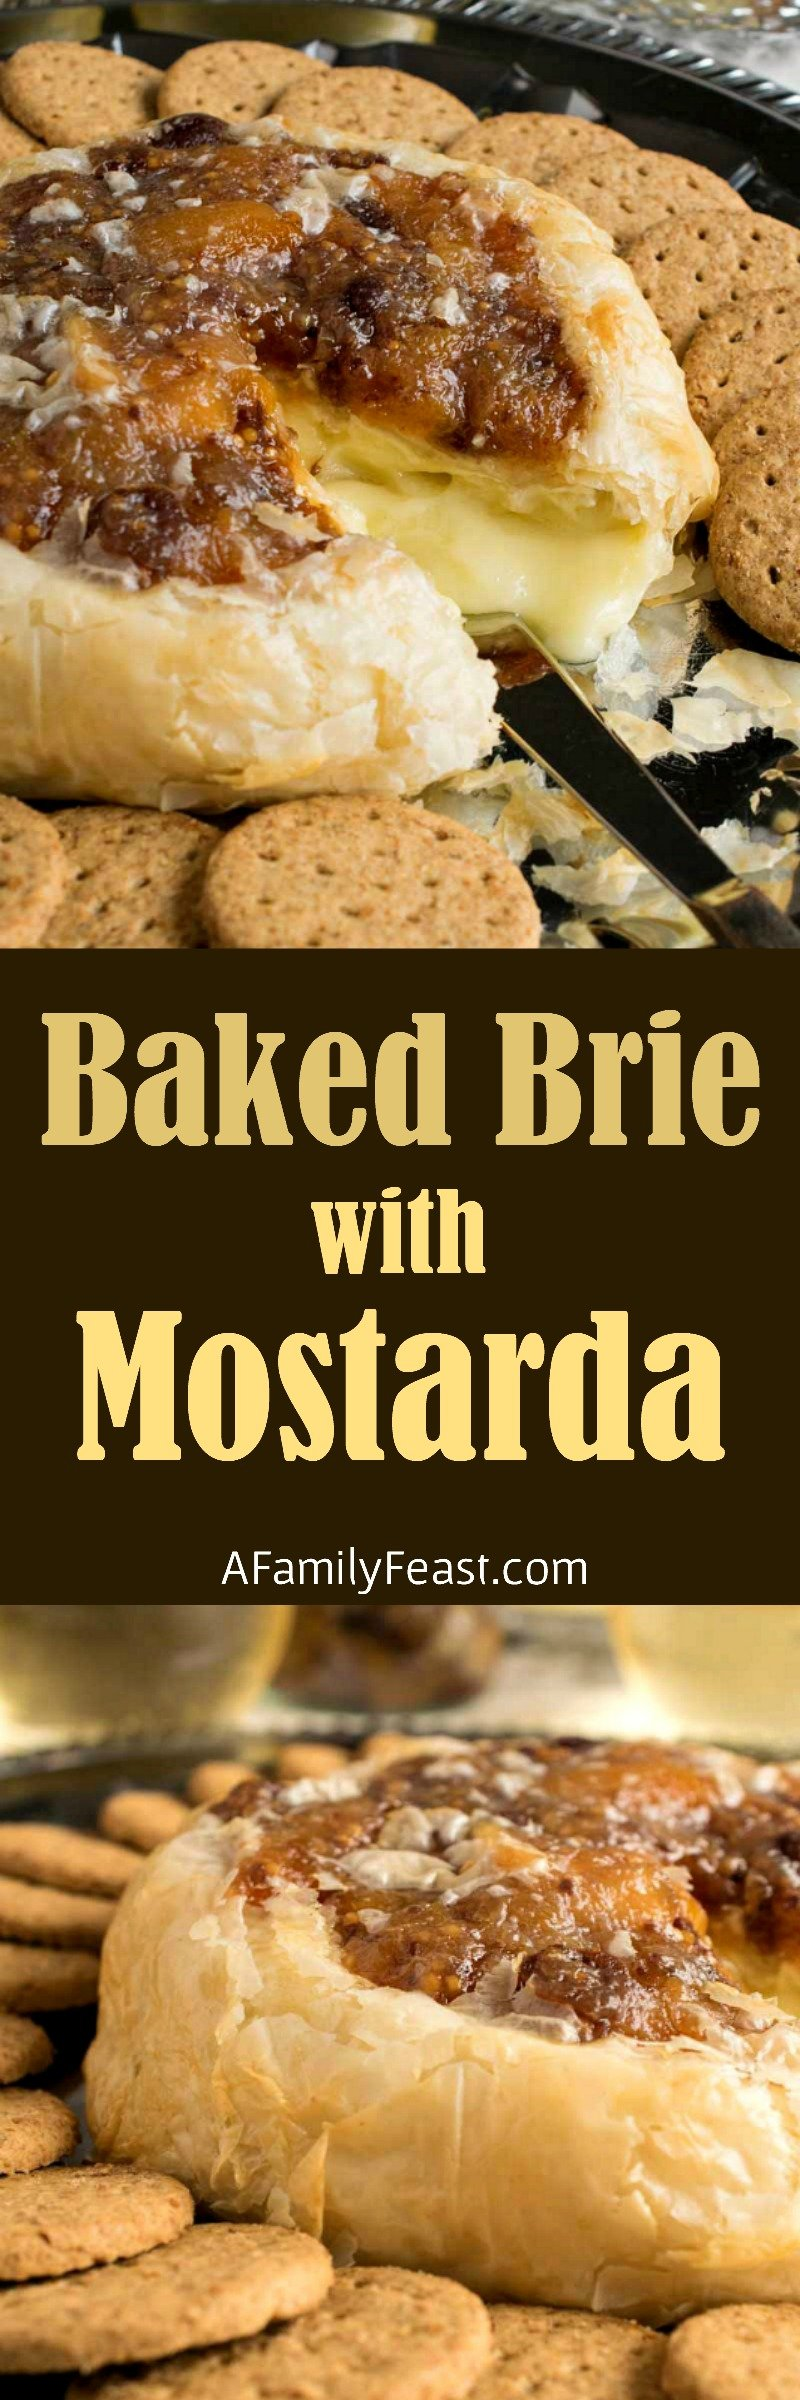 Warm and melty Baked Brie with Mostarda. Flaky golden phyllo dough wrapped around brie and topped with fruity mostarda.